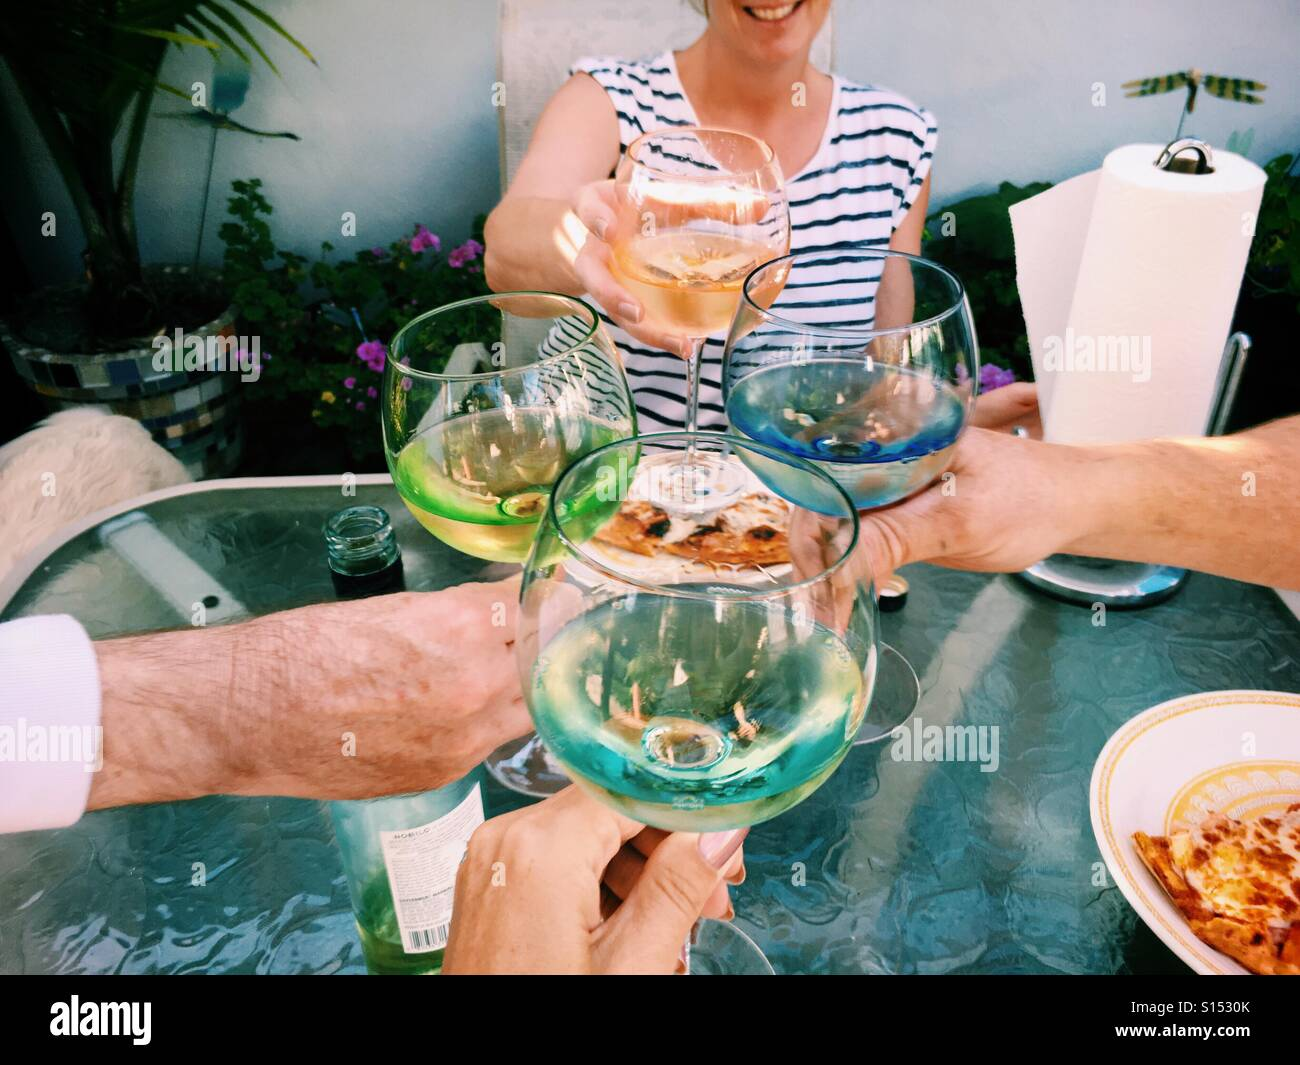 drinking-white-wine-with-pizza-outdoors-